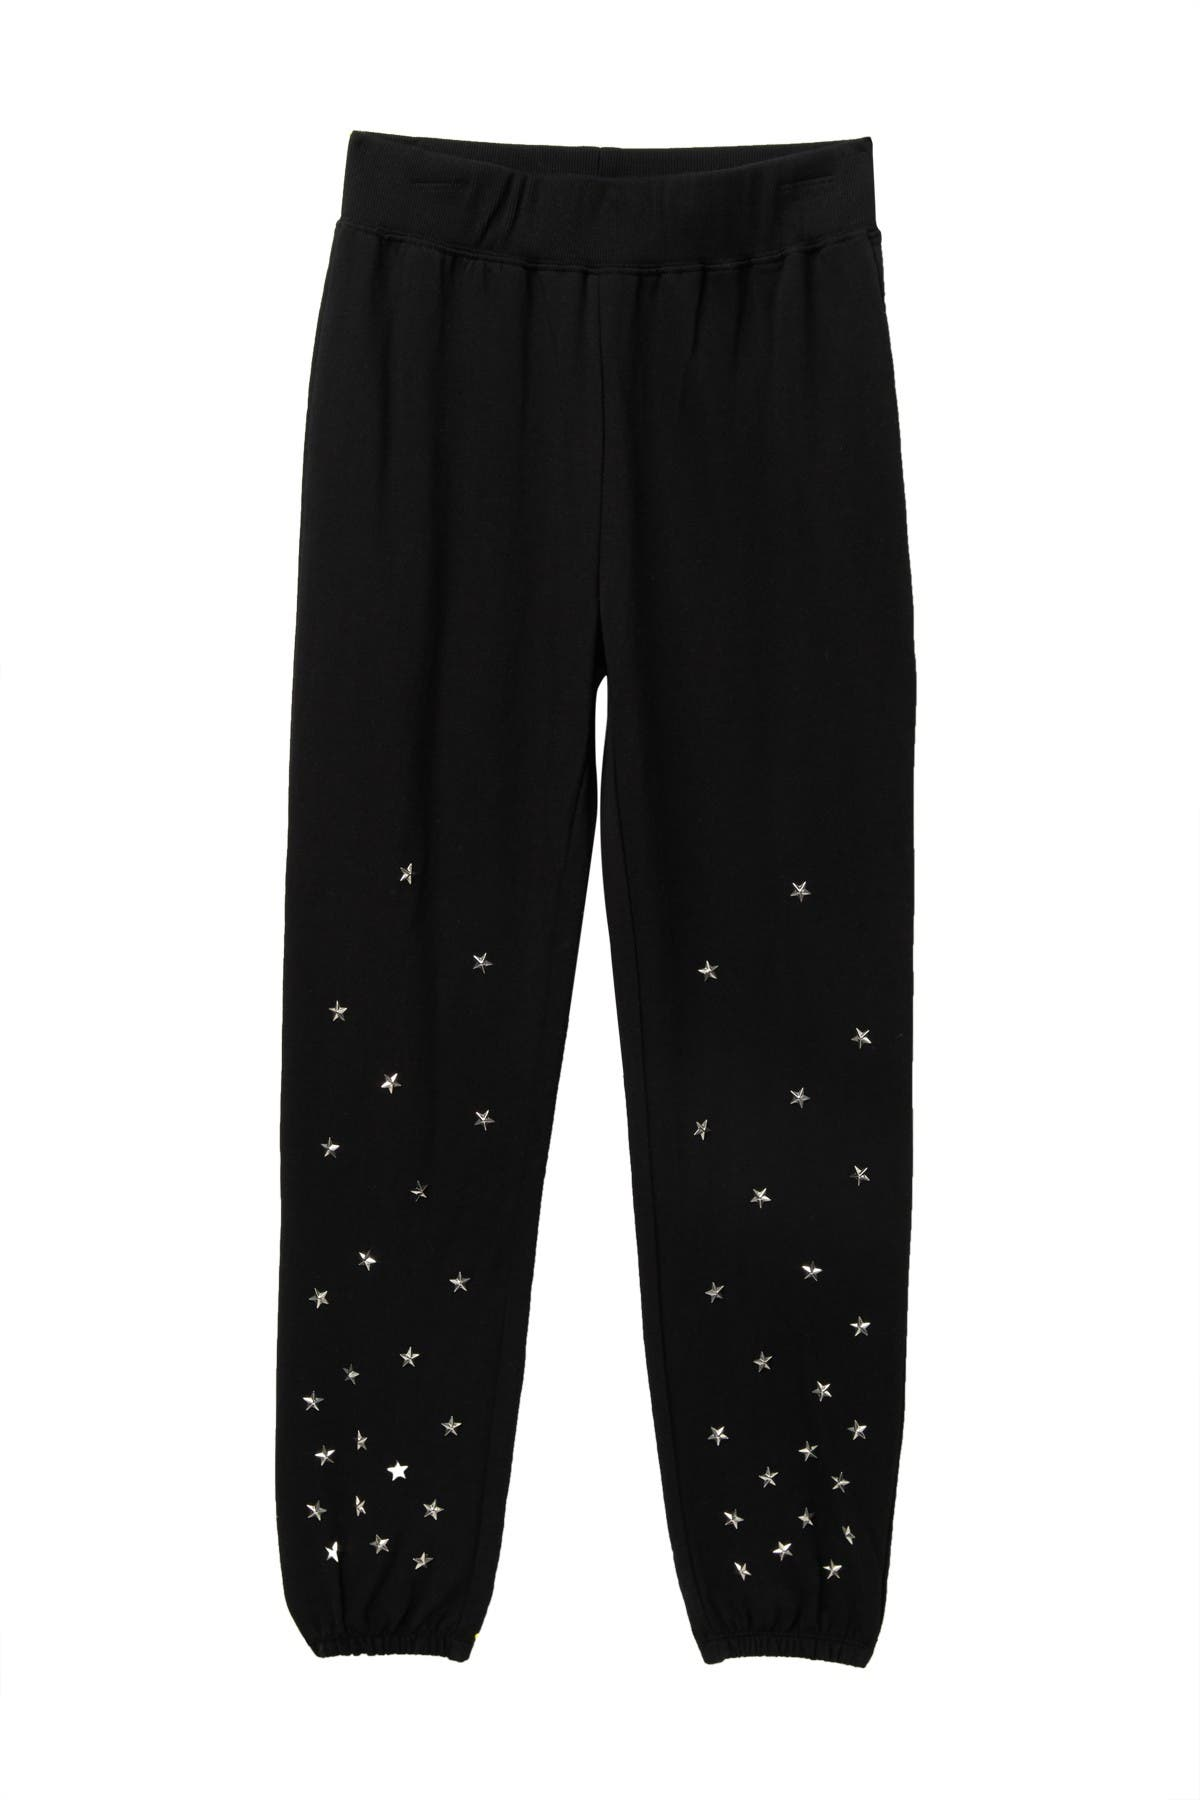 Image of Ella Moss Star Studded Jogger Pants